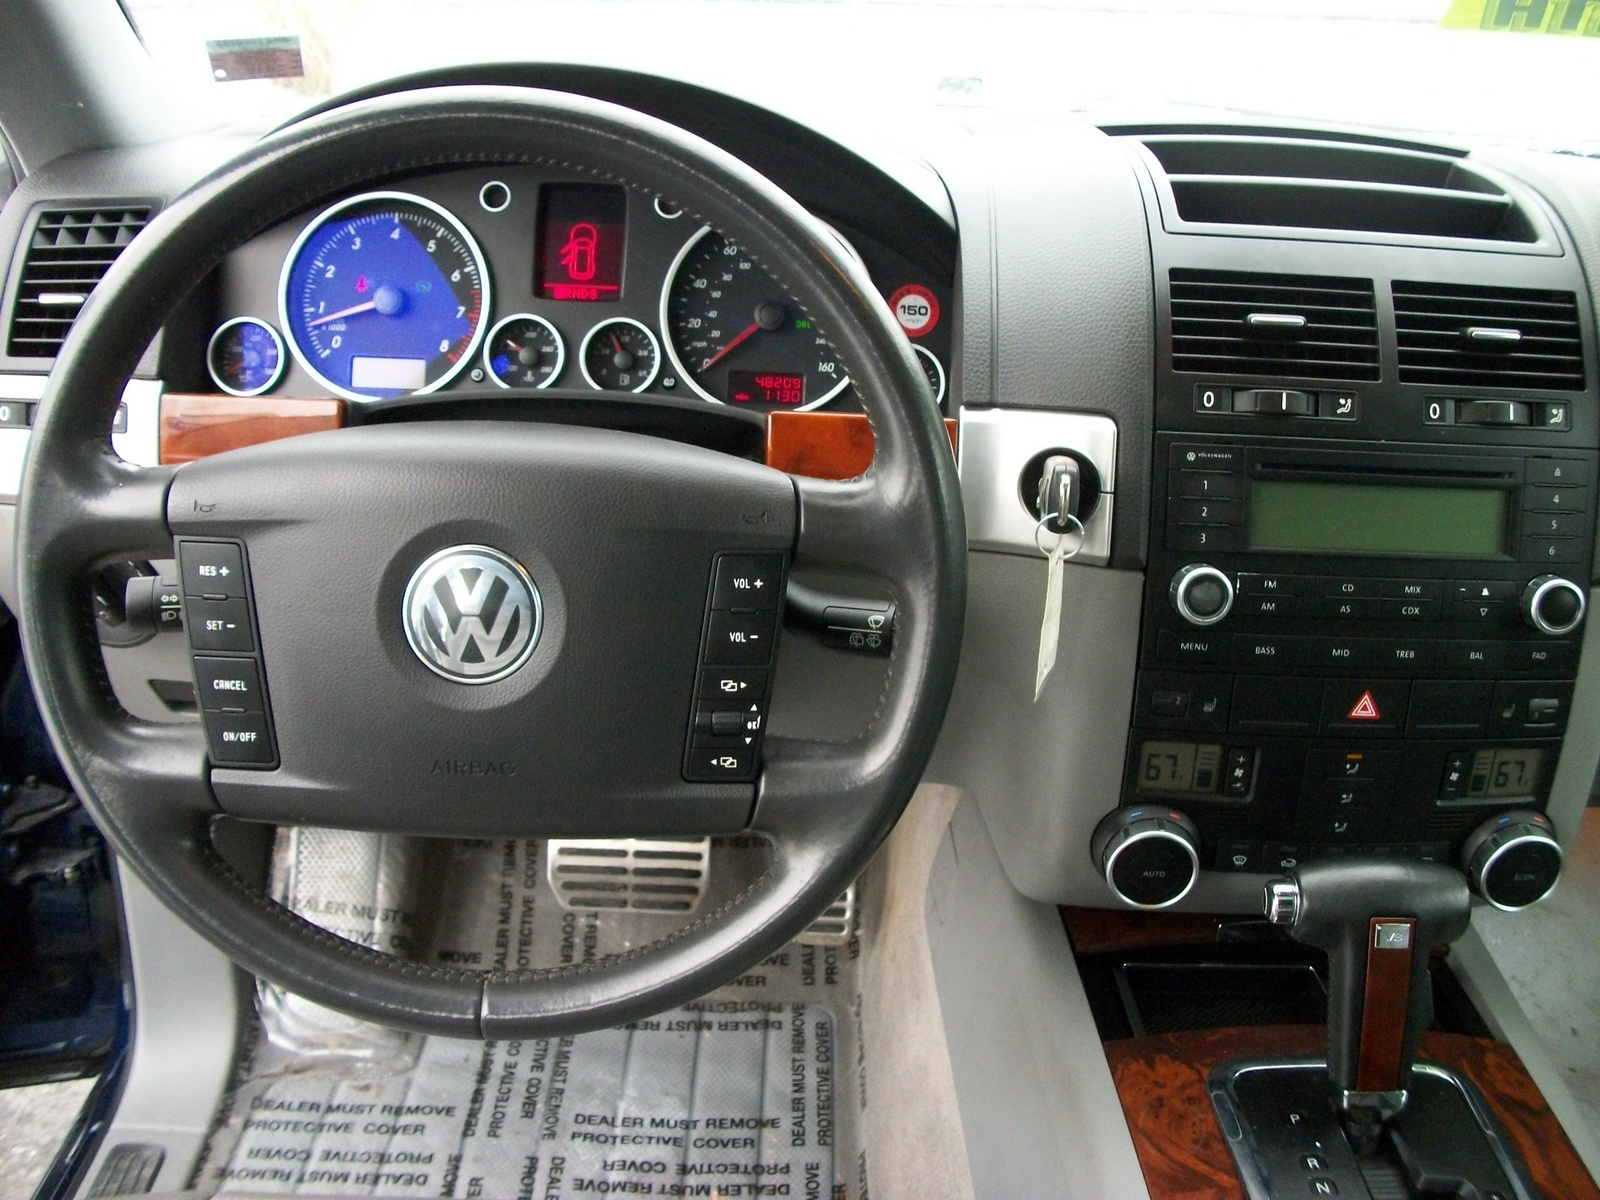 2004 volkswagen touareg interior pictures cargurus. Black Bedroom Furniture Sets. Home Design Ideas